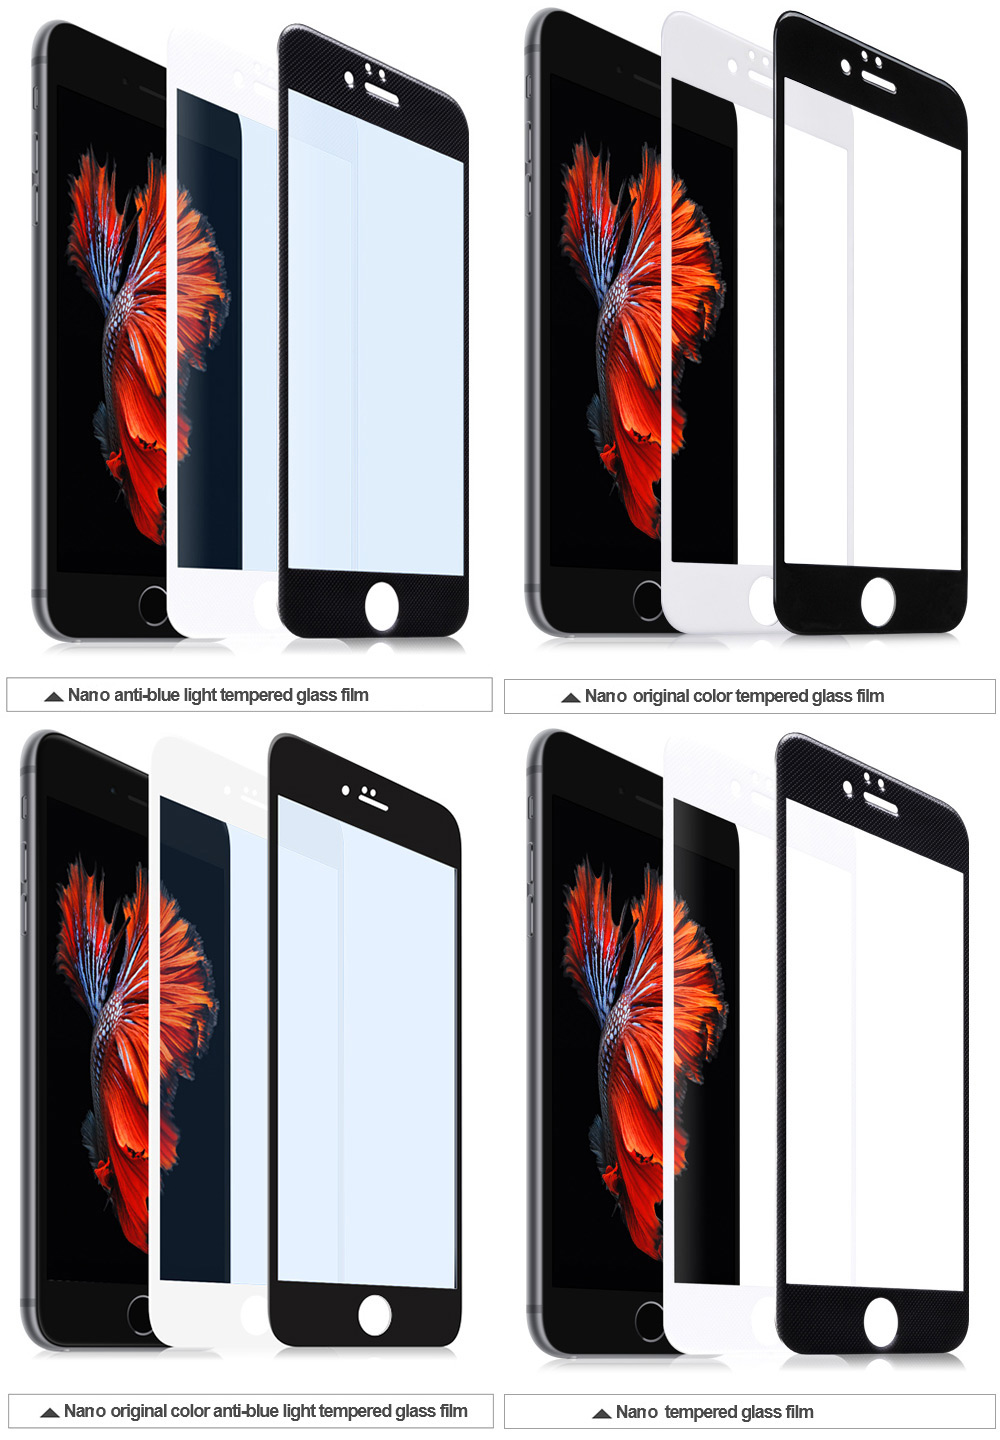 HOCO Full Screen Nano Tempered Glass for iPhone 6 Plus / 6S Plus